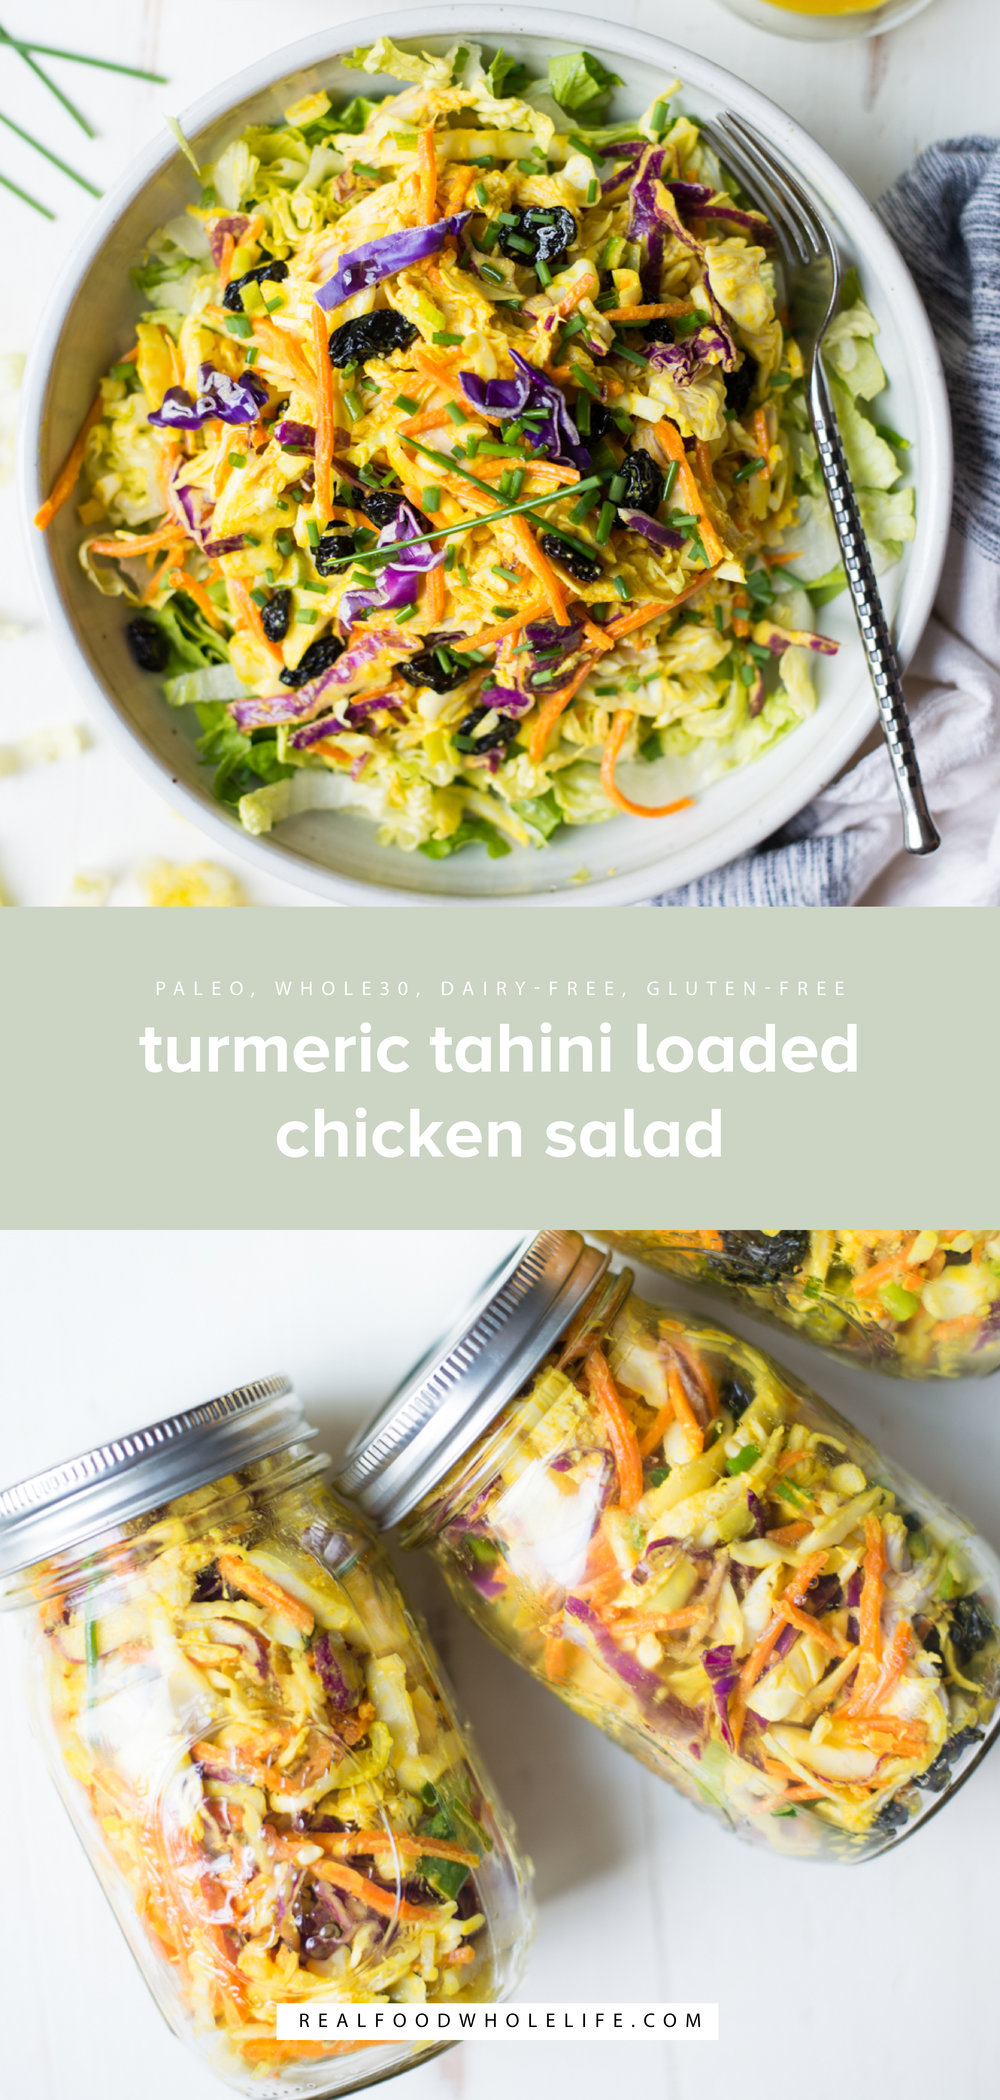 Packed with nourishing ingredients, Turmeric Tahini Loaded Chicken Salad is perfect for lunch at home or to make ahead and take on-the-go! A paleo, whole30, dairy-free, gluten-free, healthy recipe.